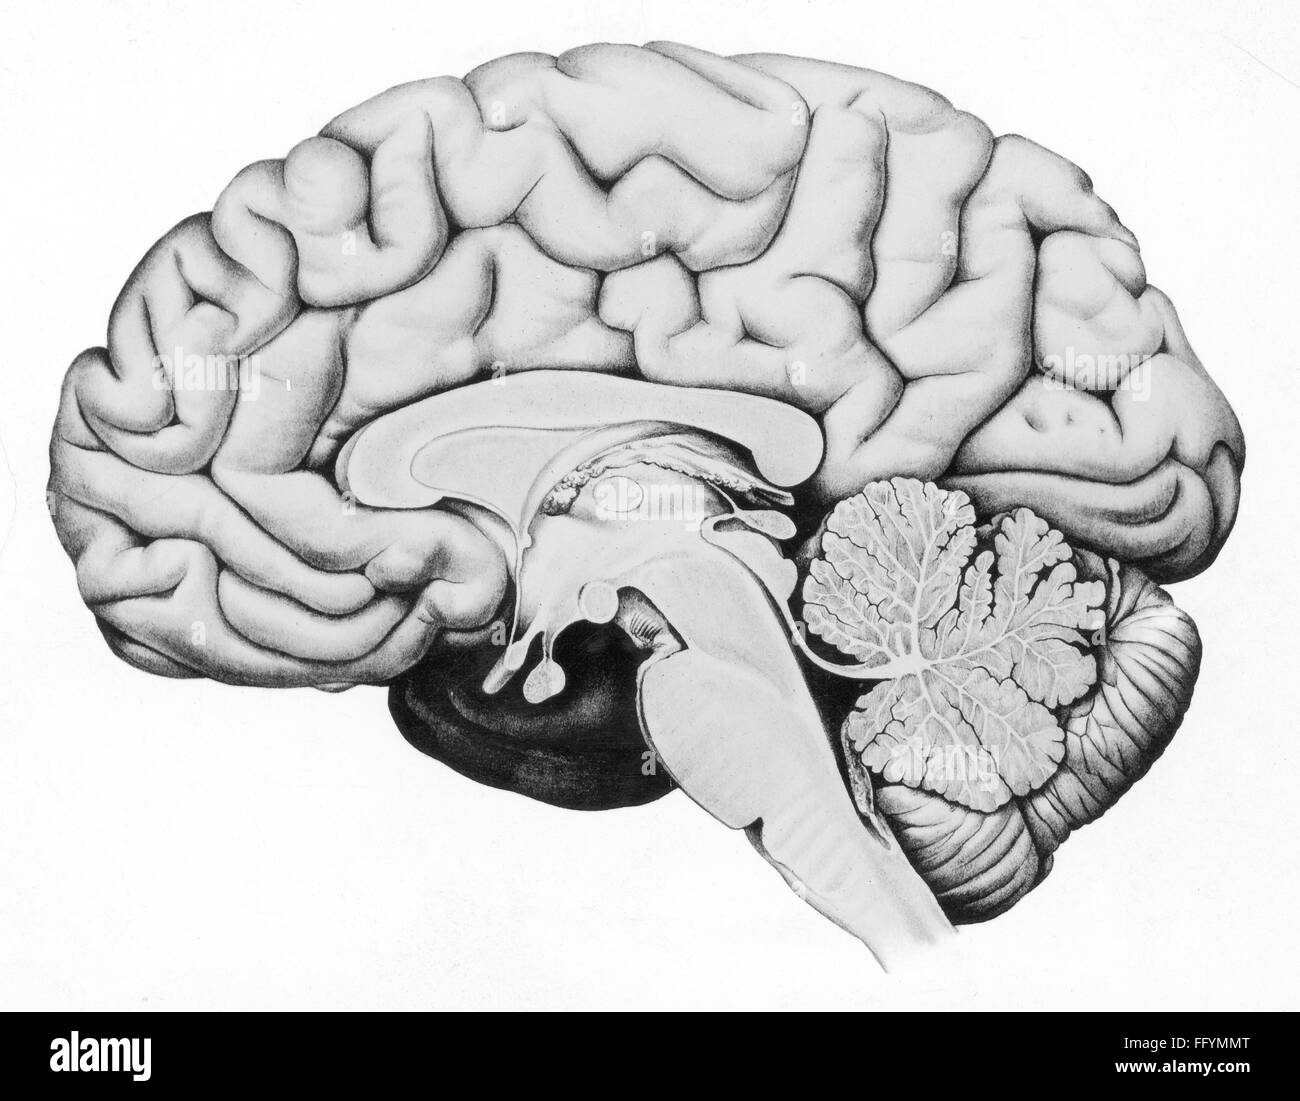 Brain Cross Section Drawing Stock Photos & Brain Cross Section ...